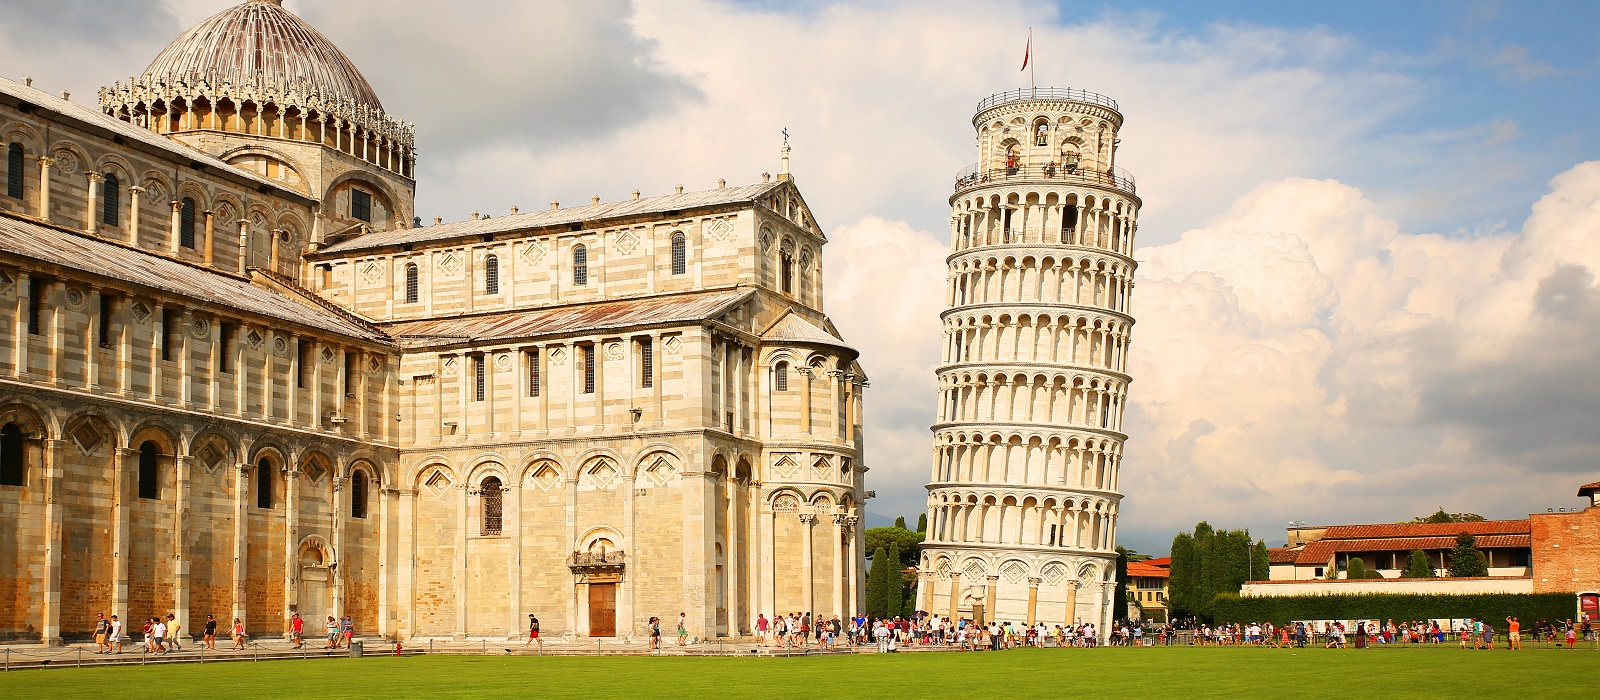 Leaning tower of Pisa, Italy, Europe